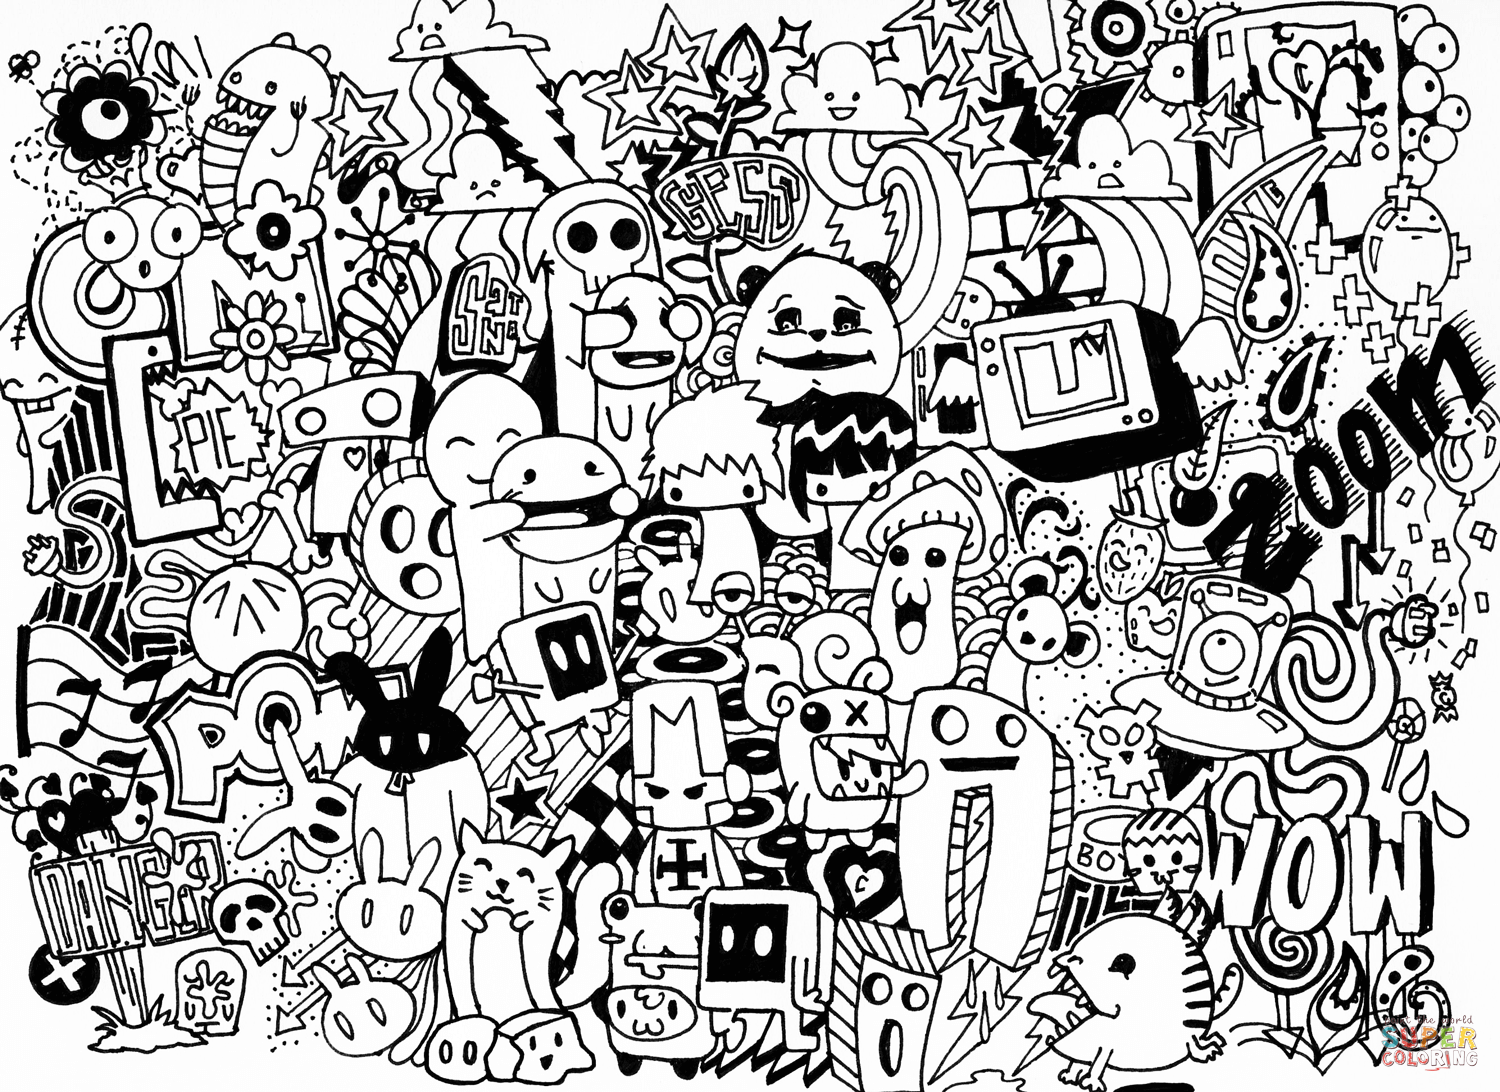 coloring sheet graffiti coloring pages doodle art doodle art designs coloring sheet graffiti pages coloring